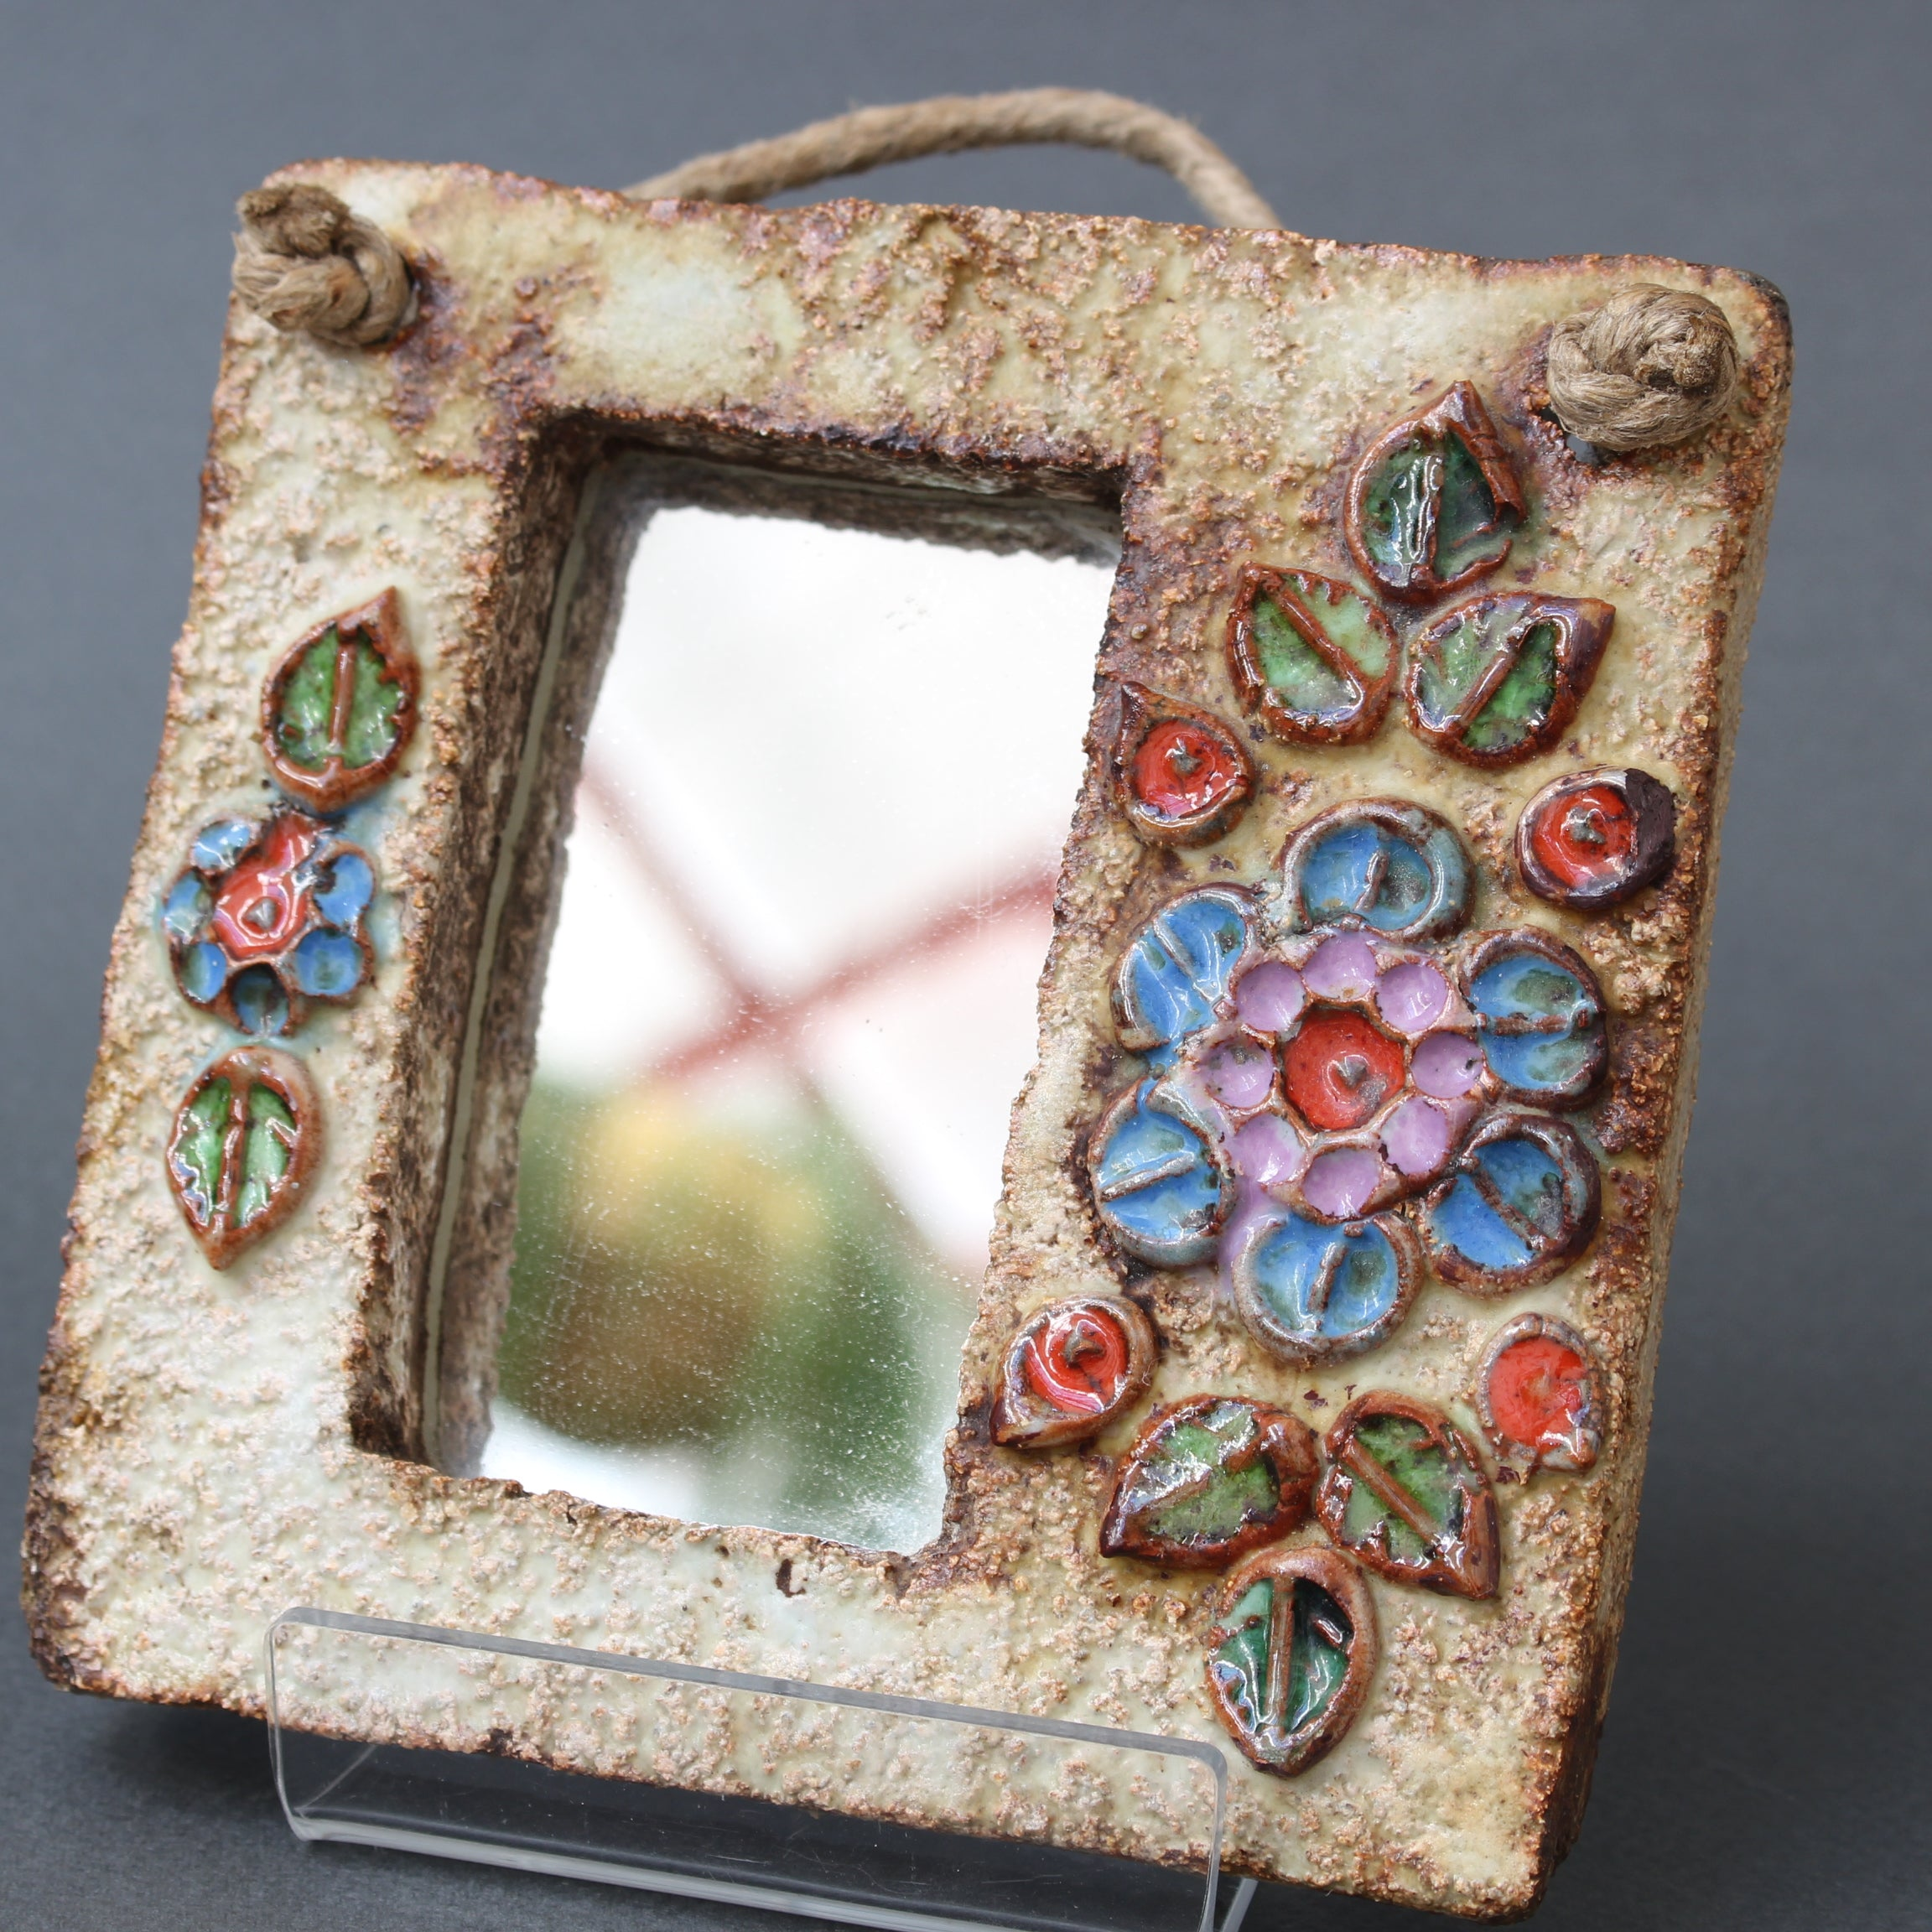 French Ceramic Wall Mirror with Flower Motif by La Roue (circa 1960s) - Small